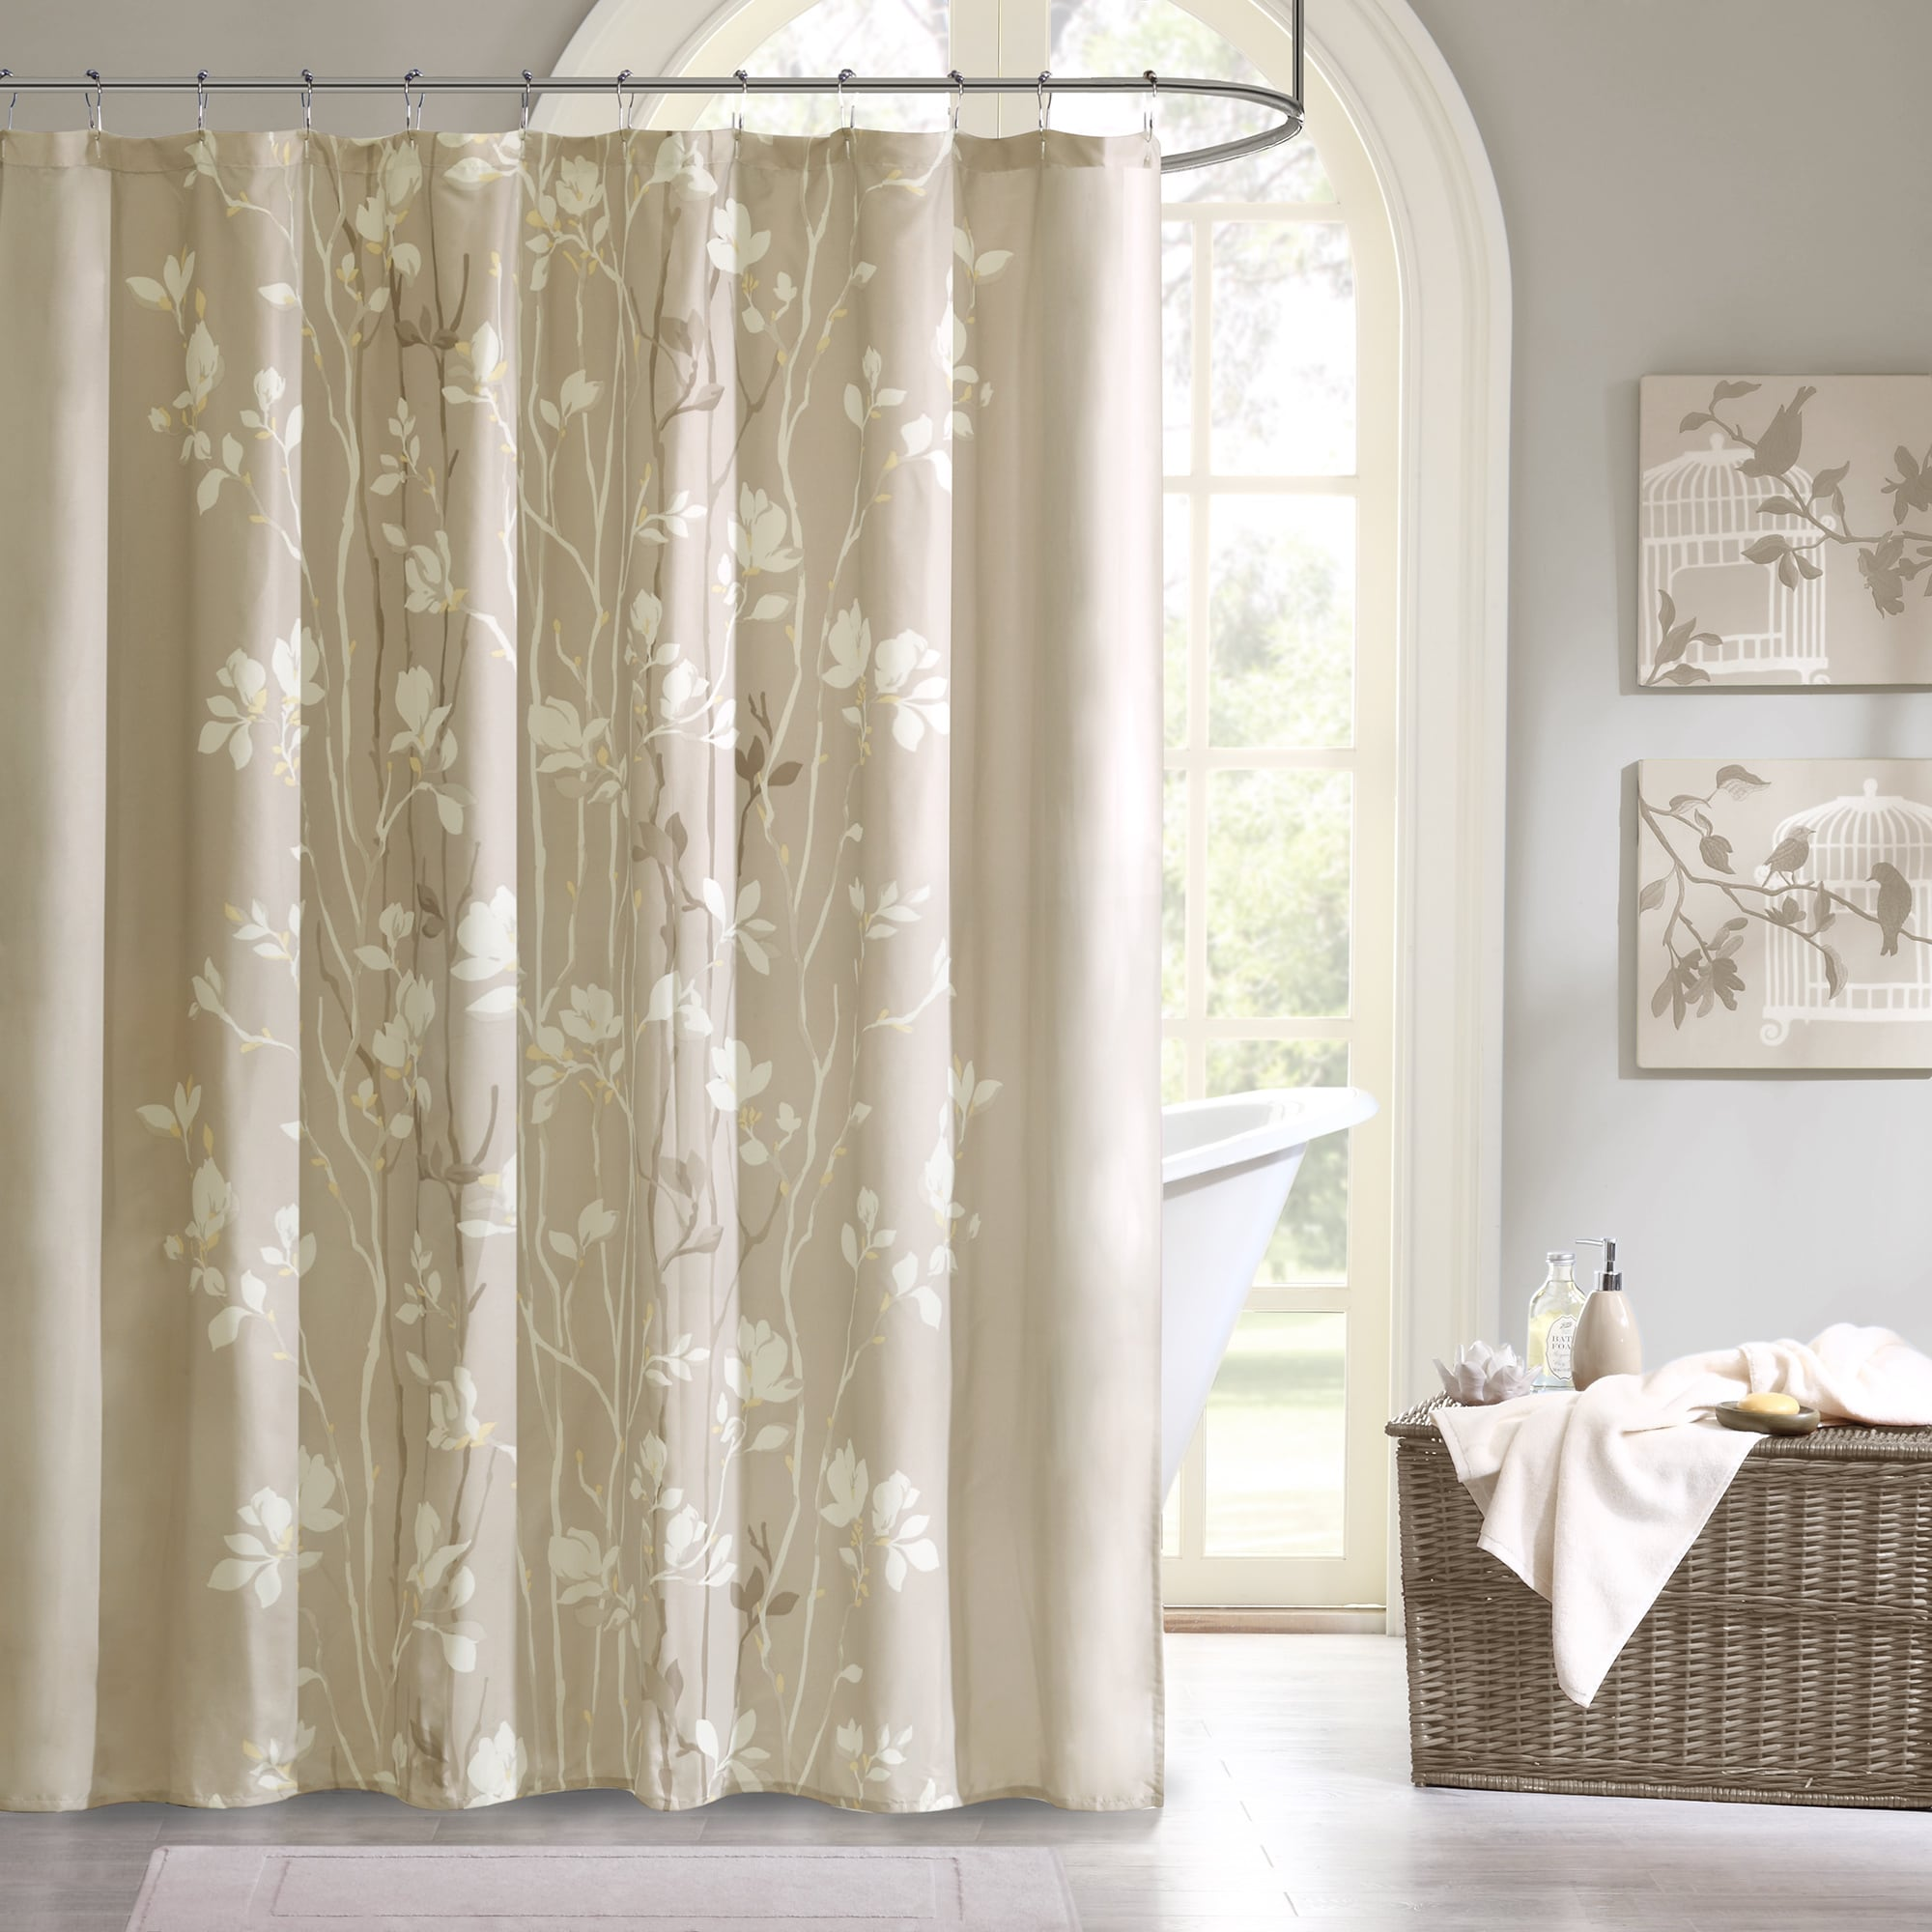 tree shower curtain nature taupe bathroom fabric tan leaves bath